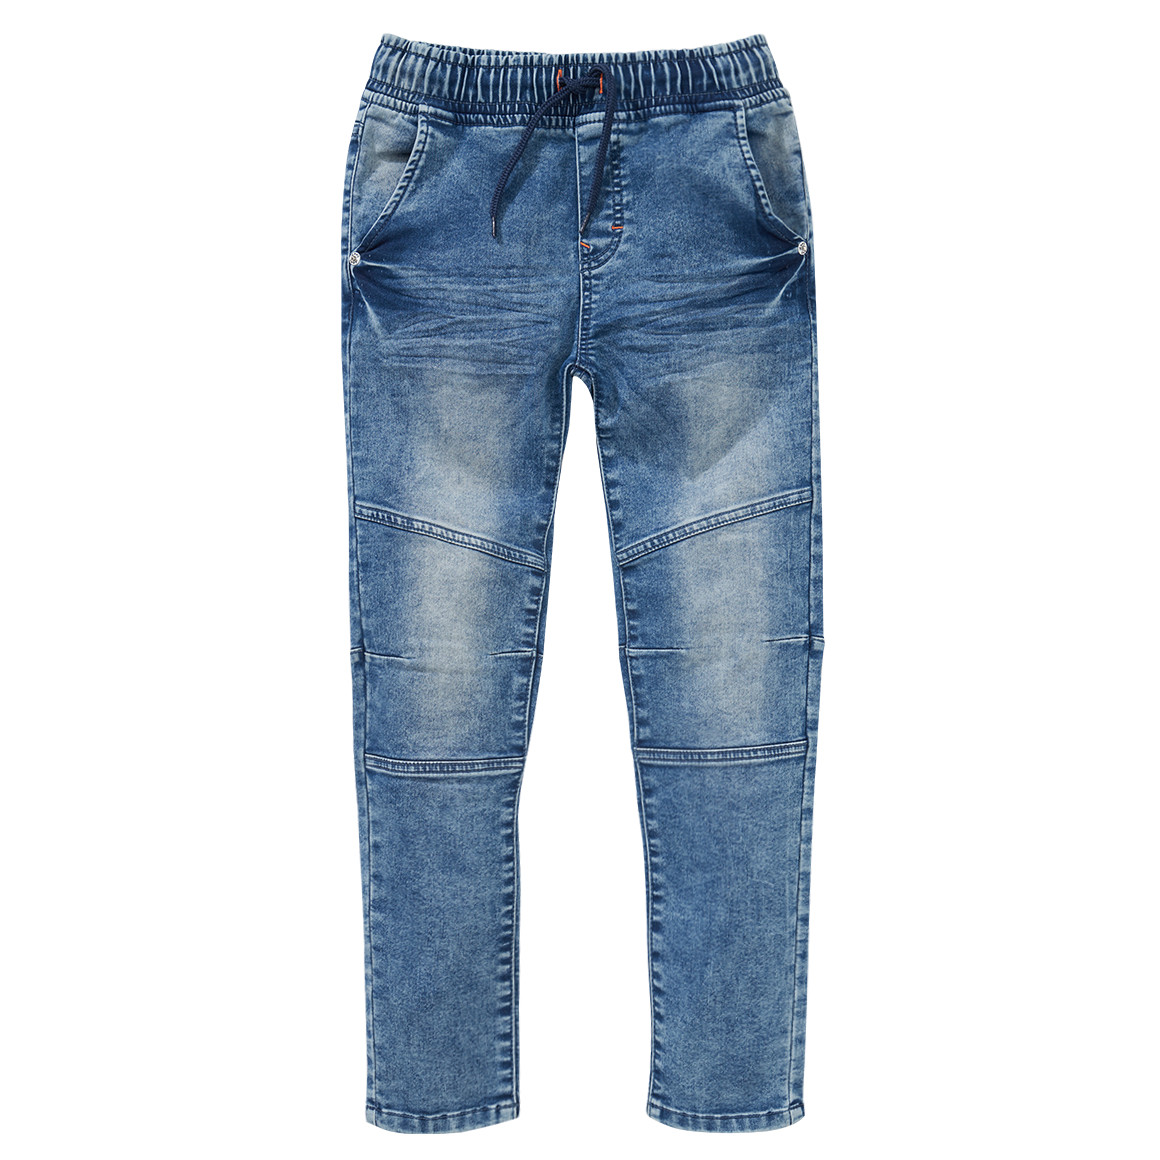 Boyshosen - Jungen Pull on Jeans mit Used Waschung - Onlineshop Ernstings family